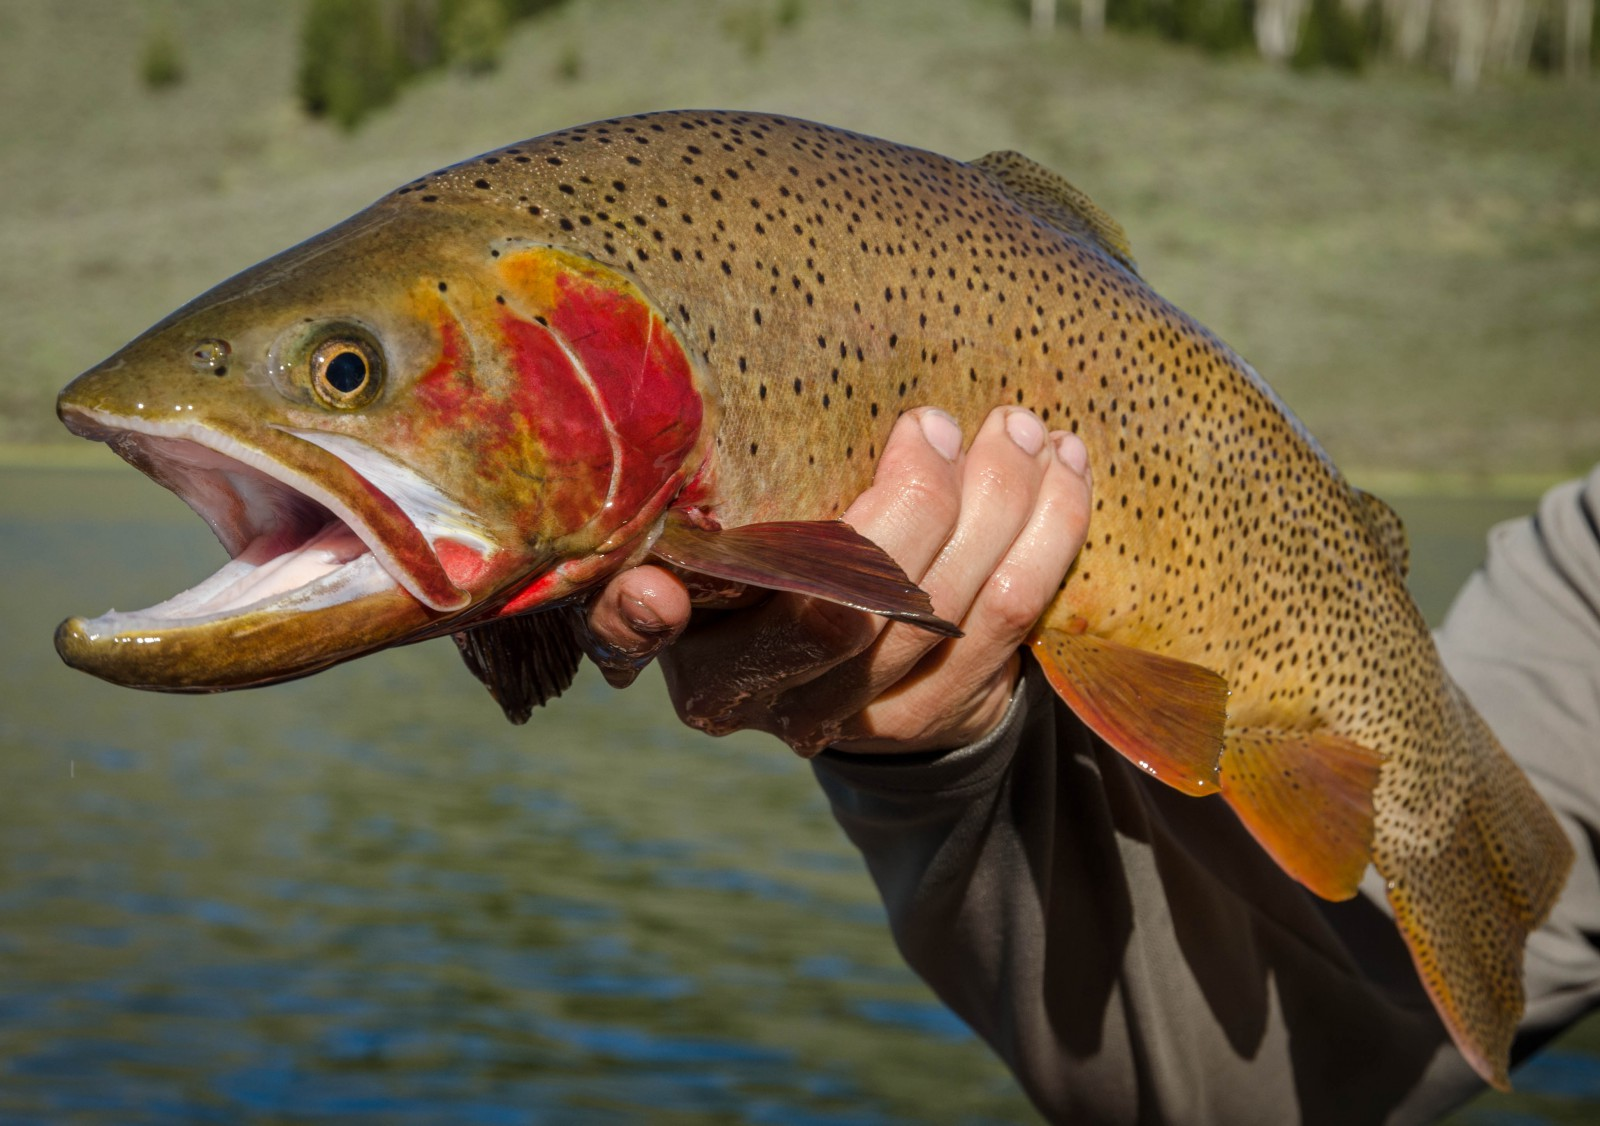 Yellowstone Cutthroat Courtesy of Friends of the Teton River